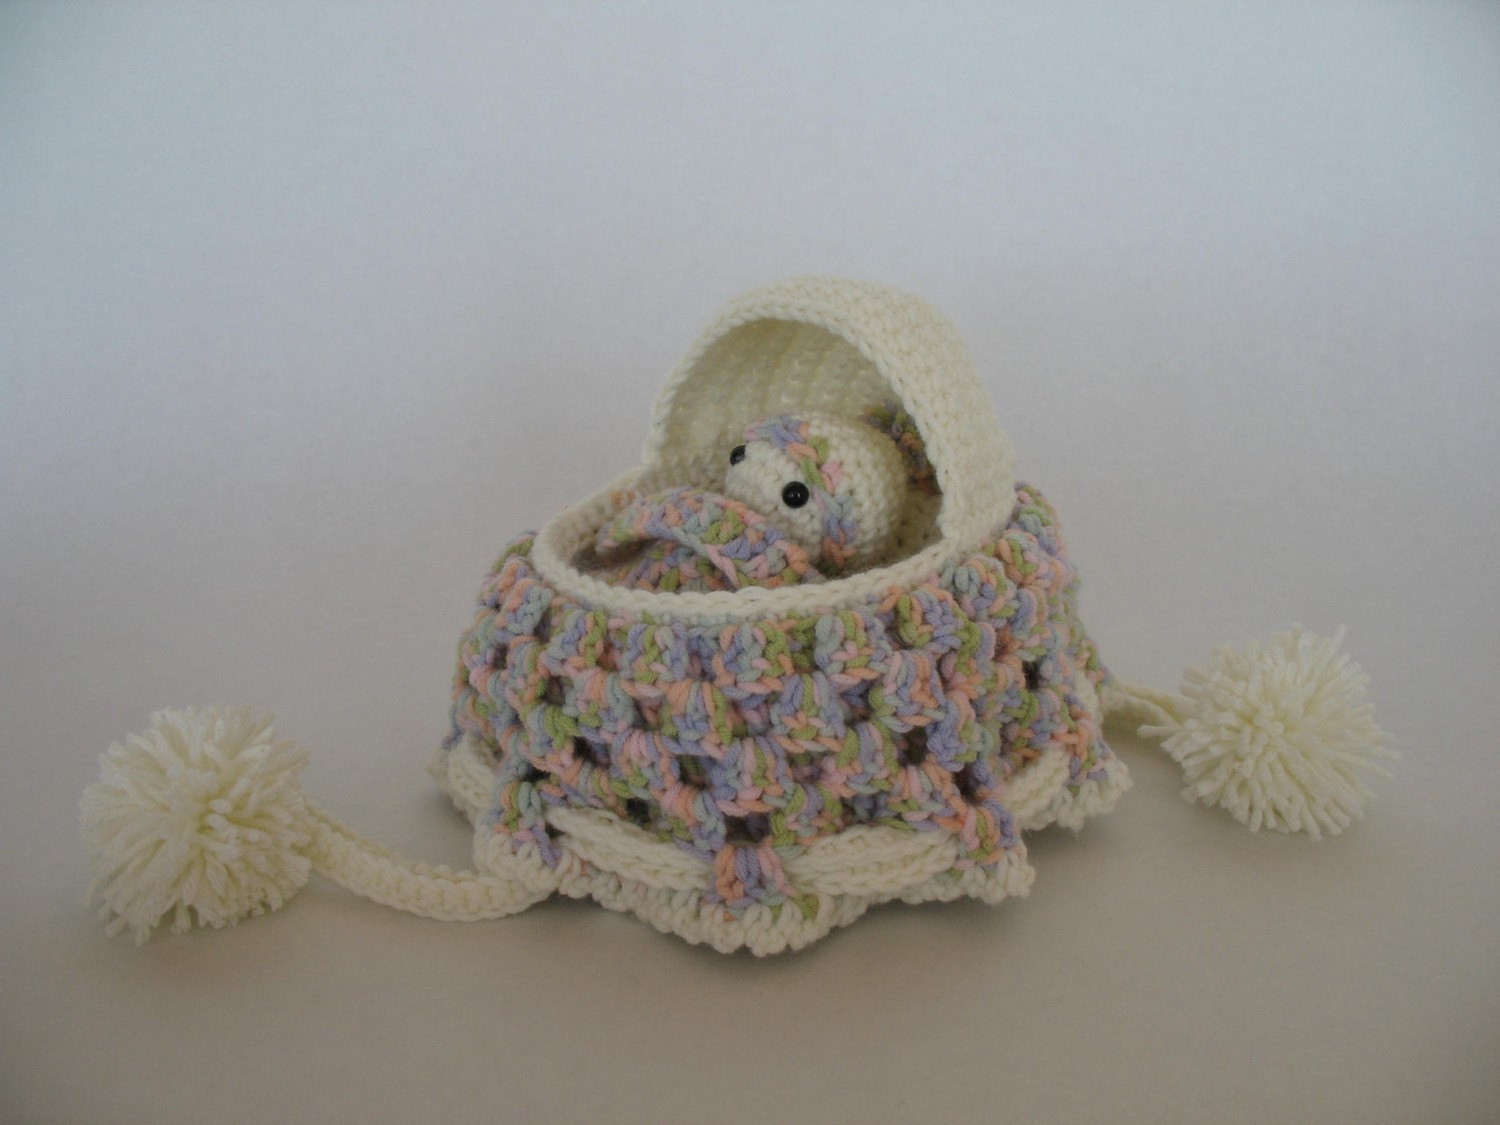 Awesome Crochet Cradle Purse Pattern Etsy Crochet Patterns Of Unique 43 Models Etsy Crochet Patterns